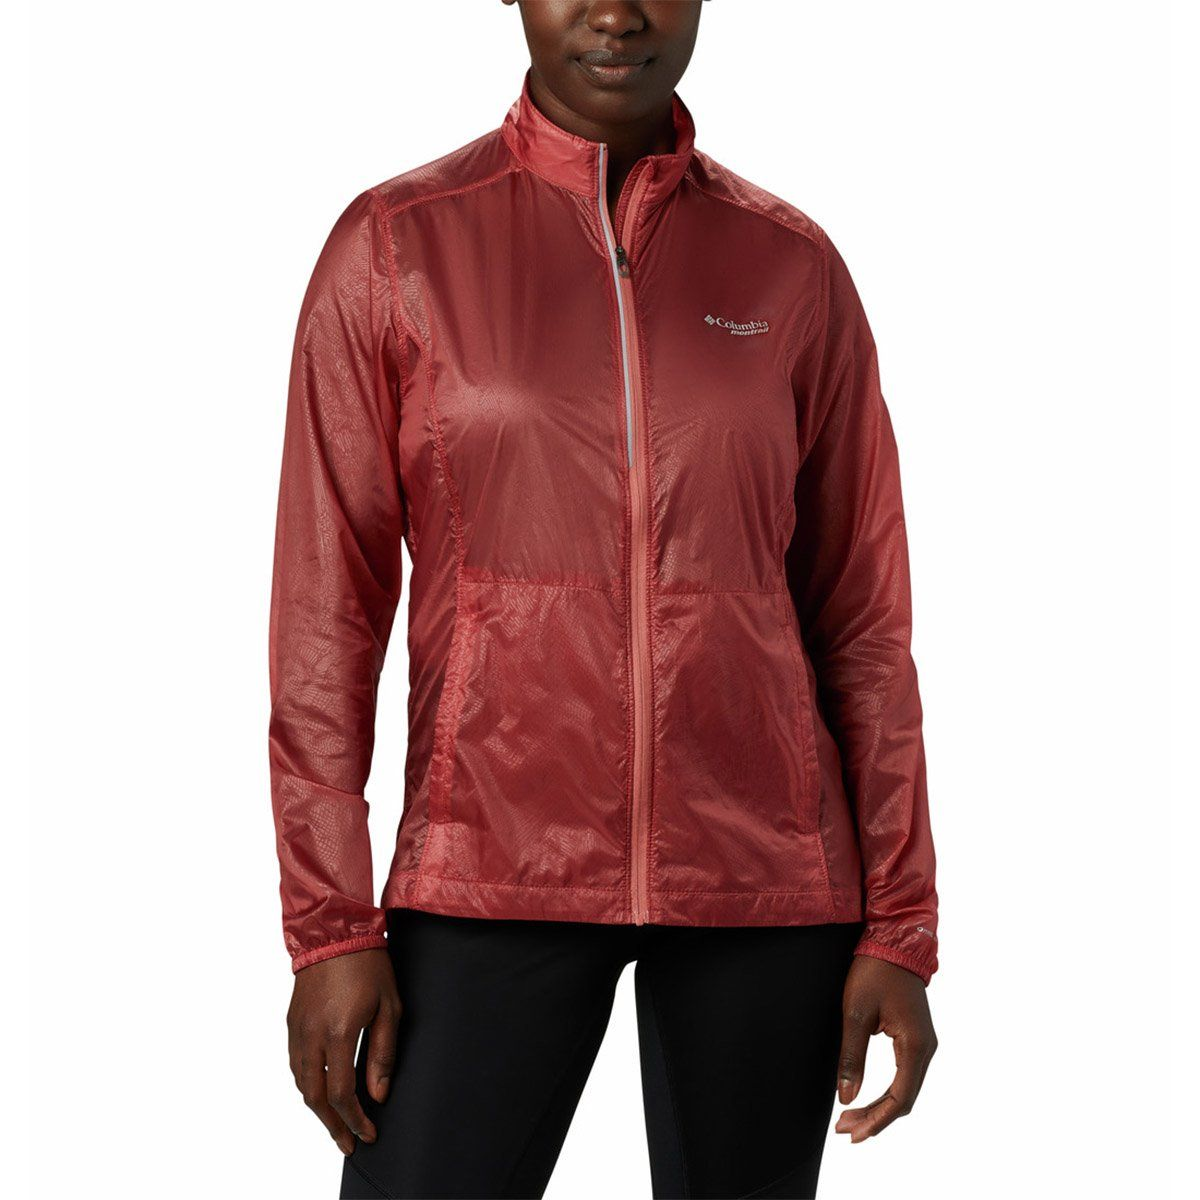 Columbia FKT Windbreaker Jacket dame